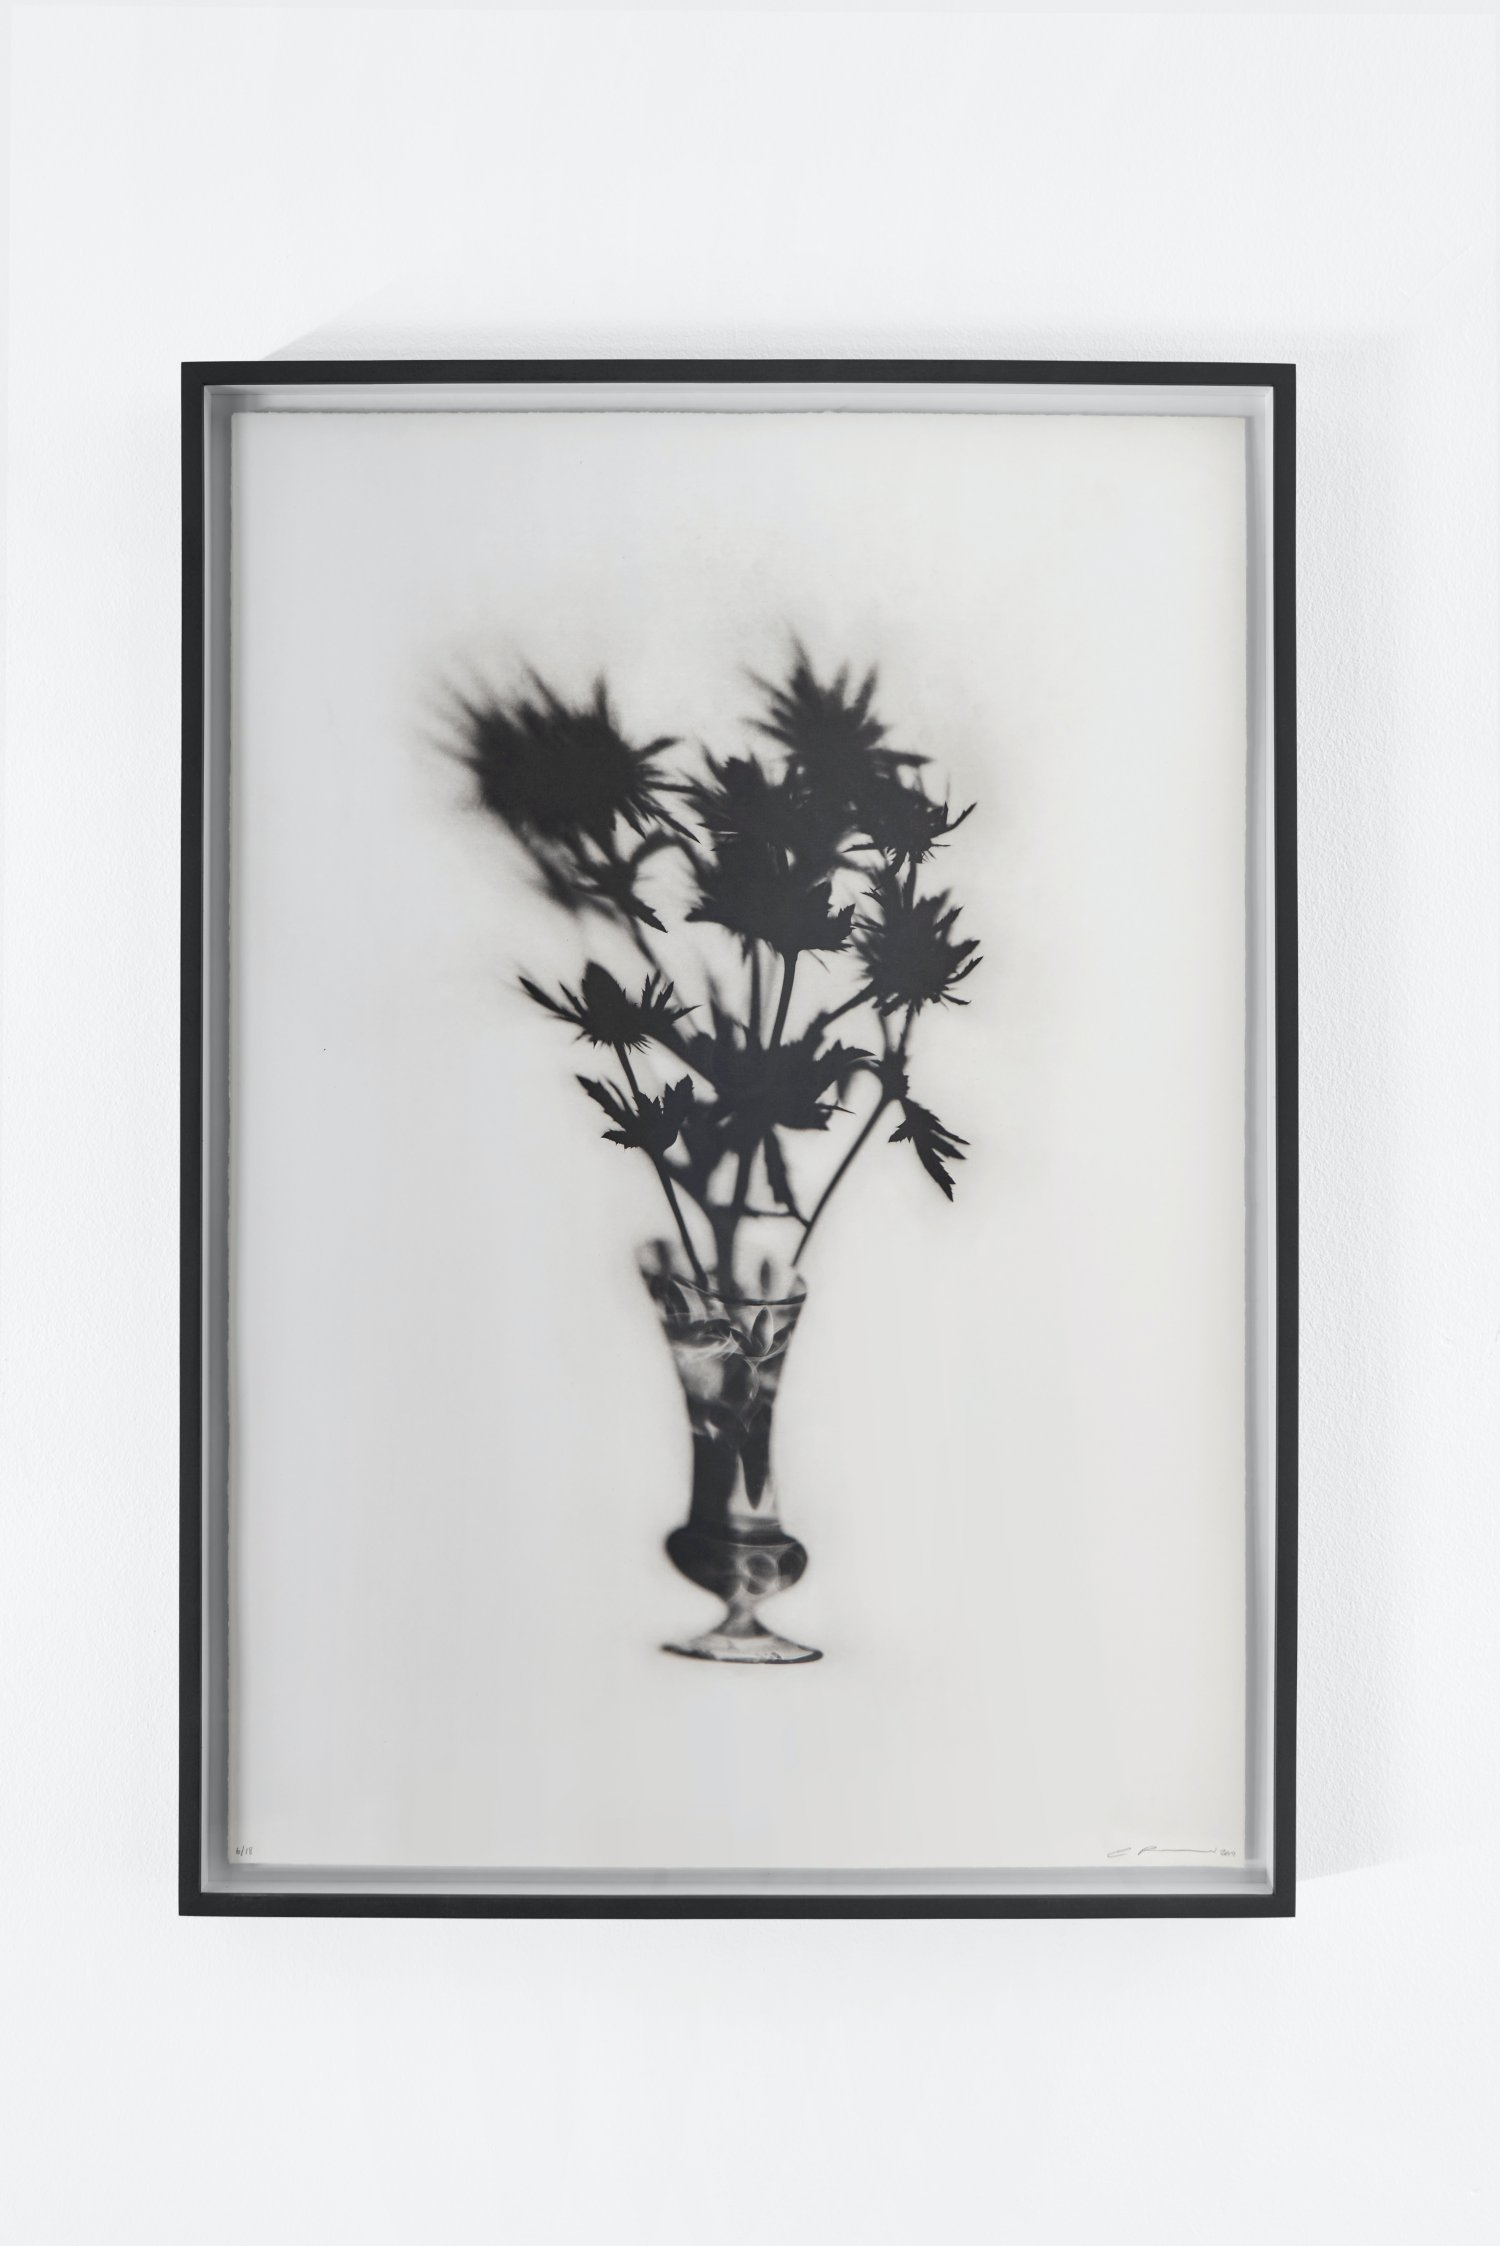 Cut Glass and Thistles